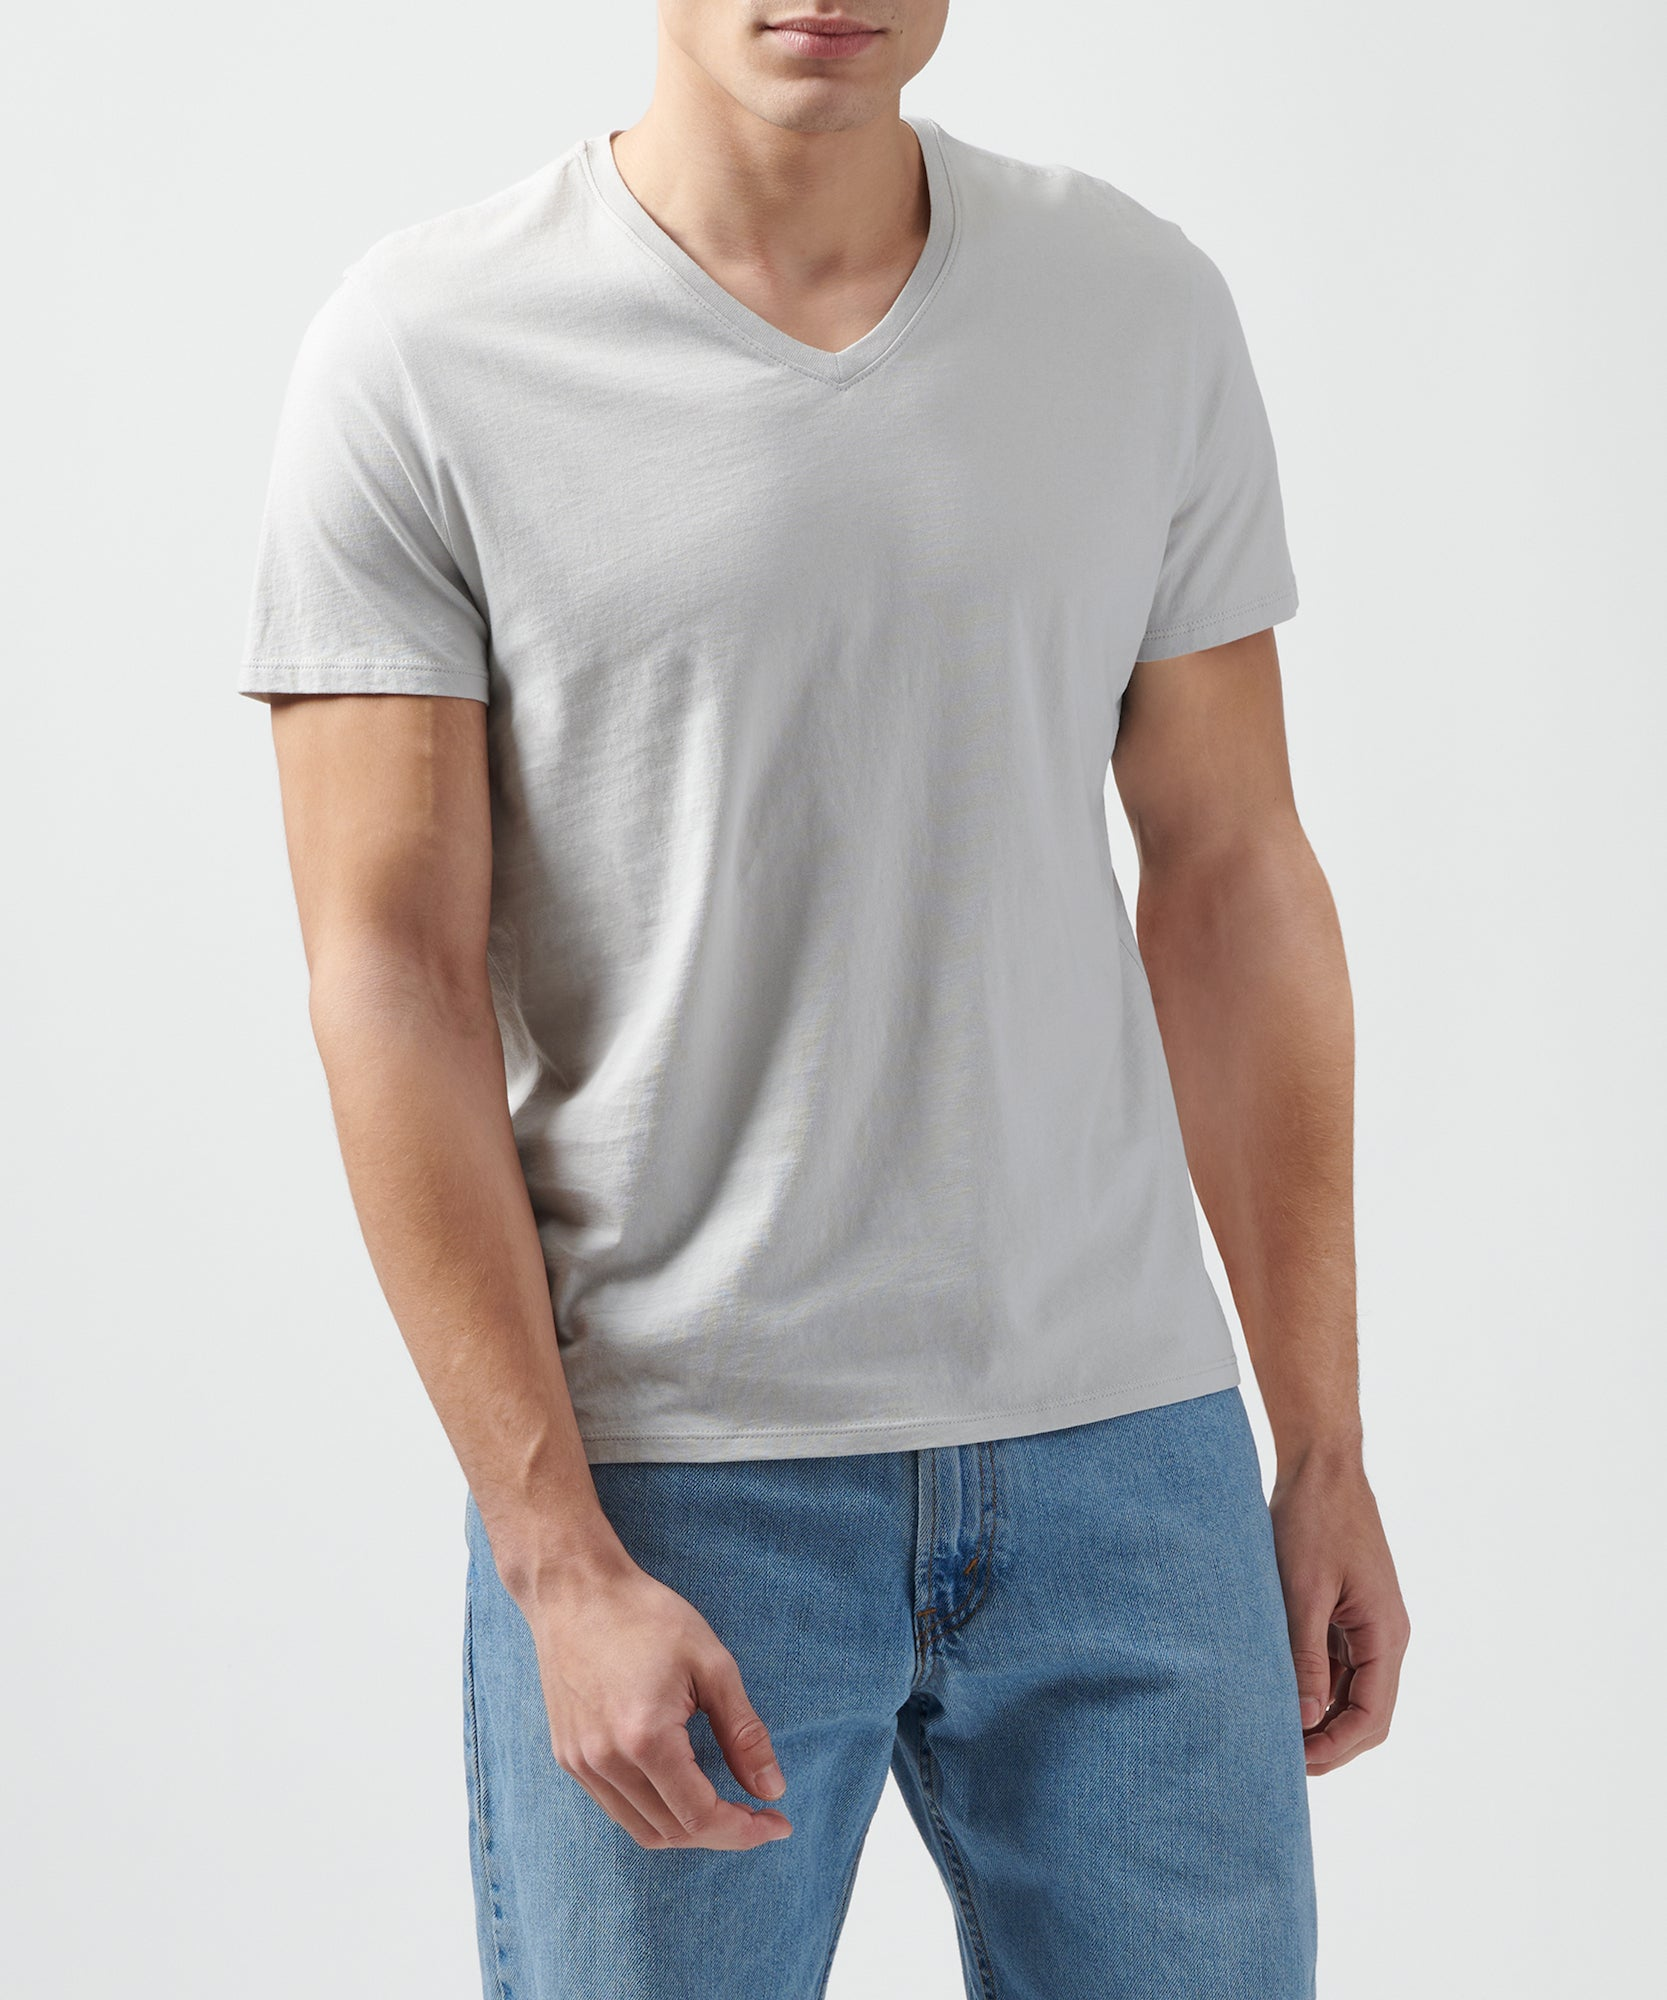 Grey Classic Jersey V-Neck Tee - Men's Cotton Short Sleeve T-shirt by ATM Anthony Thomas Melillo